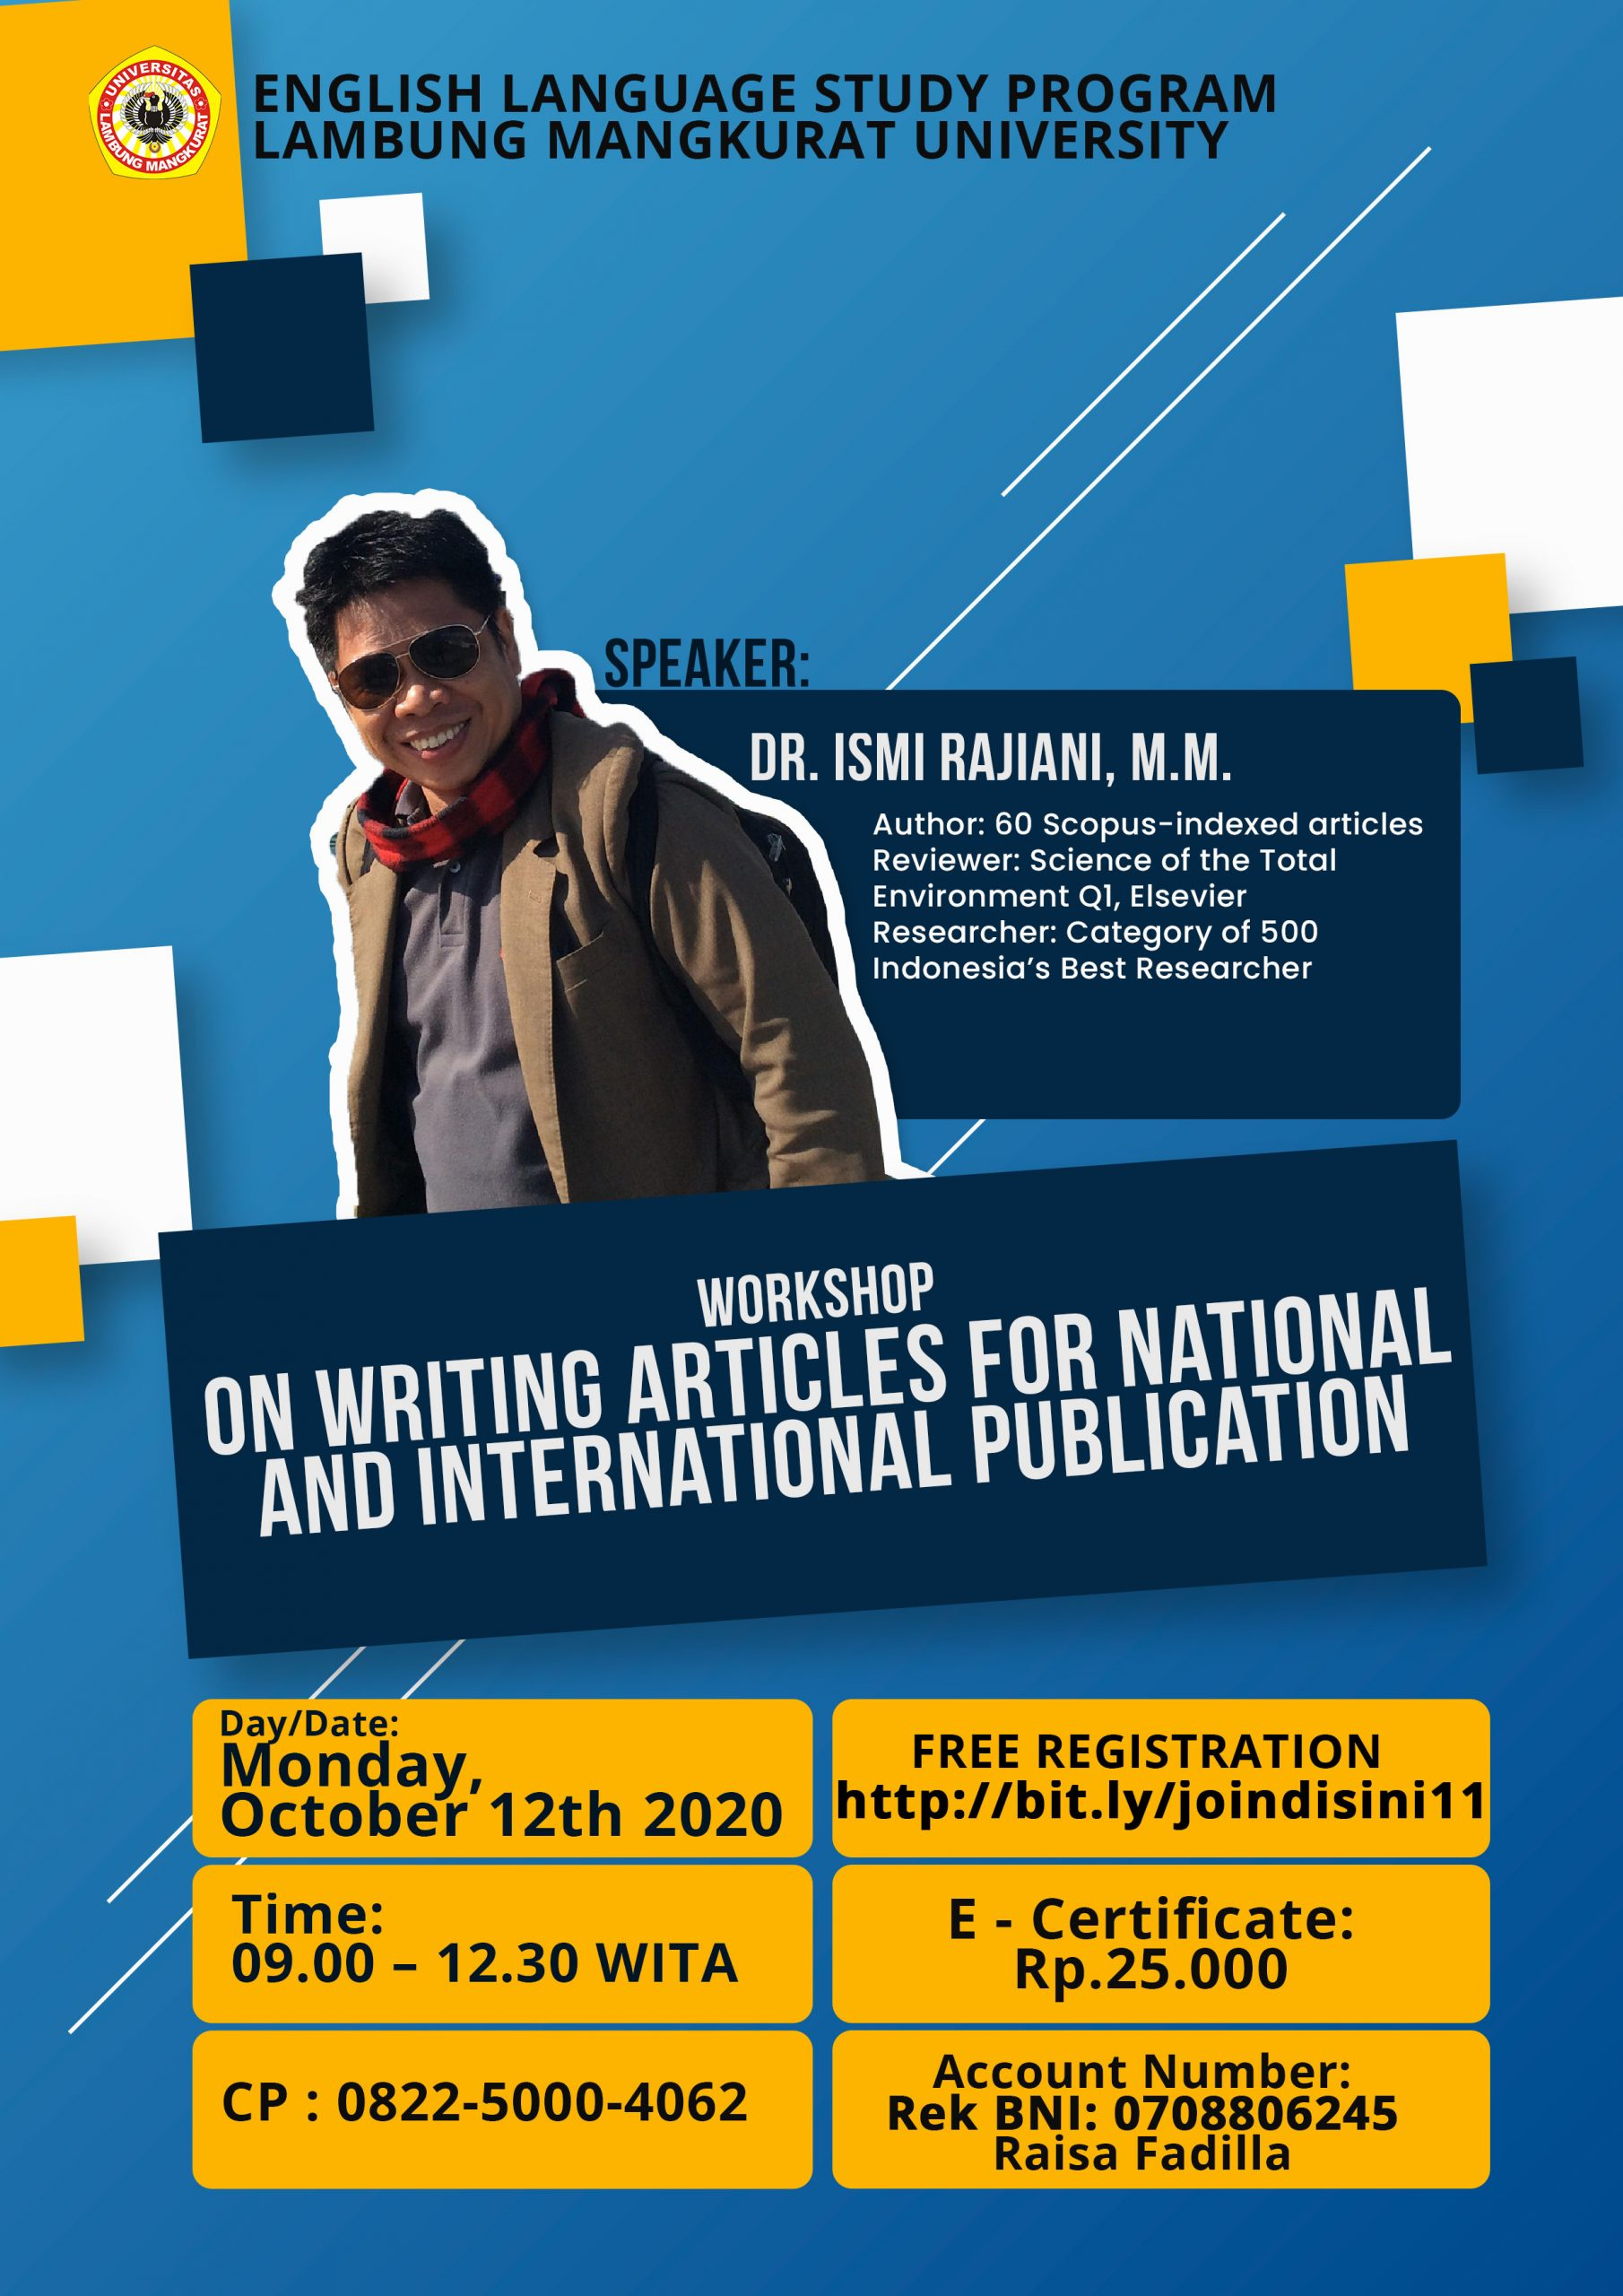 ON-WRITING-ARTICLES-FOR-NATIONAL-AND-INTERNATIONAL-PUBLICATION-F